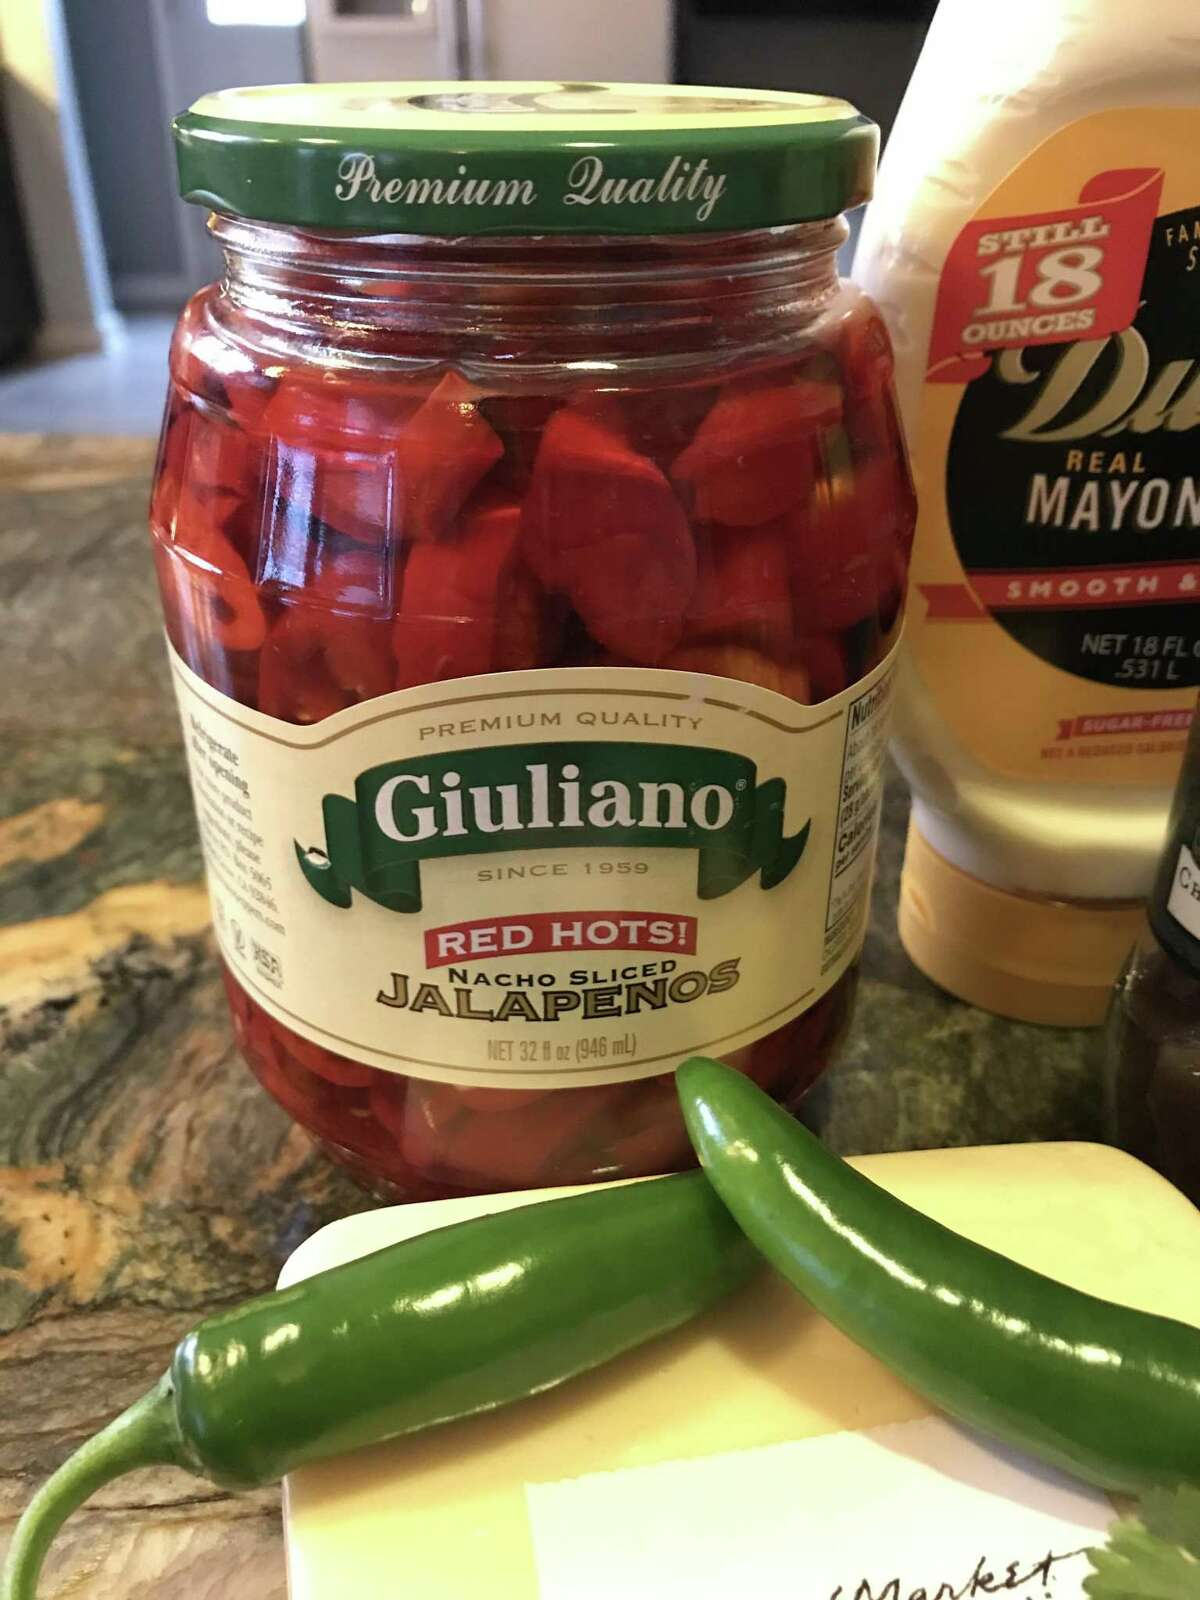 The brand of pickled red jalapeños I used for my Puro San Antonio Spicy Pimento Cheese. They are wonderful and will be a pantry staple in my house from now on.